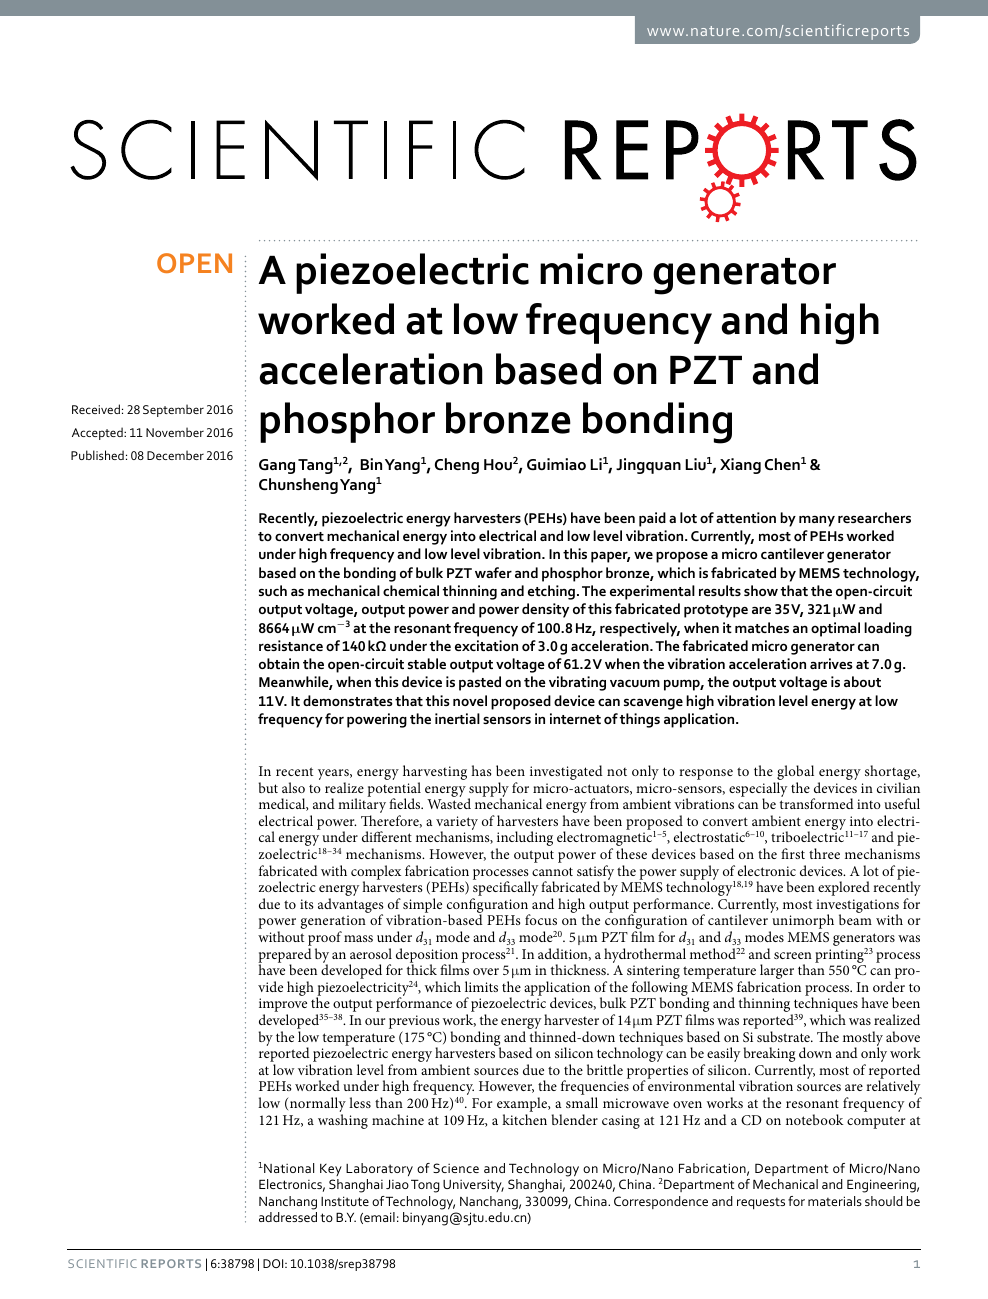 A piezoelectric micro generator worked at low frequency and